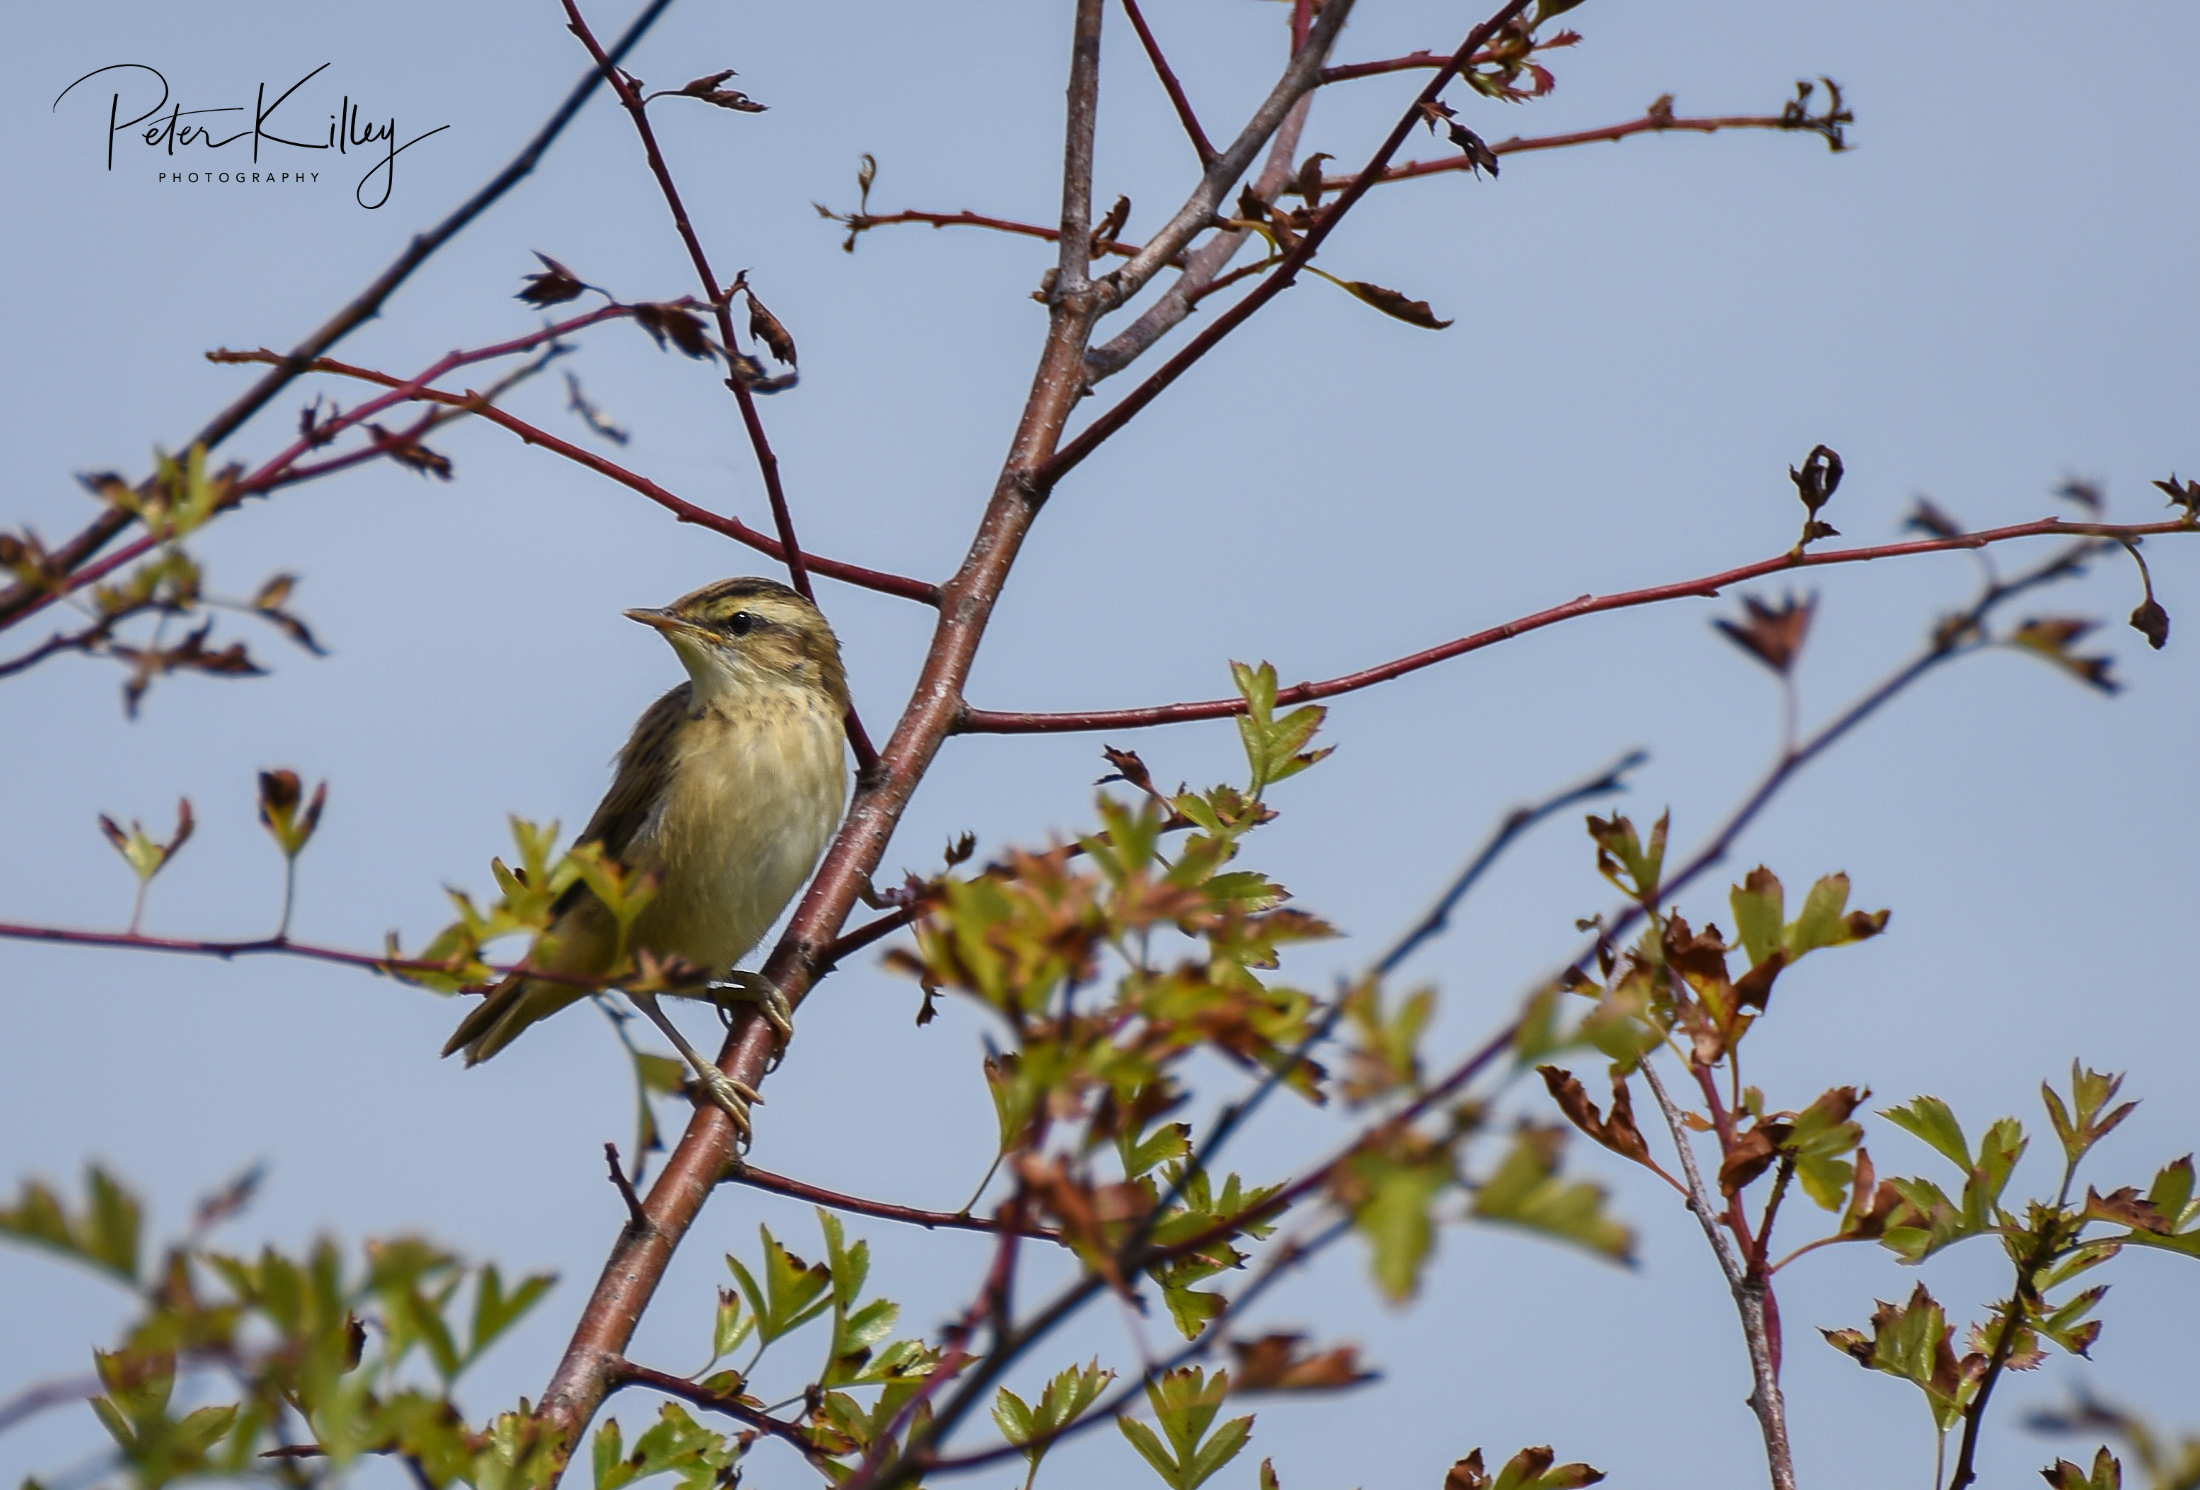 Sedge Warbler (Peter Killey)